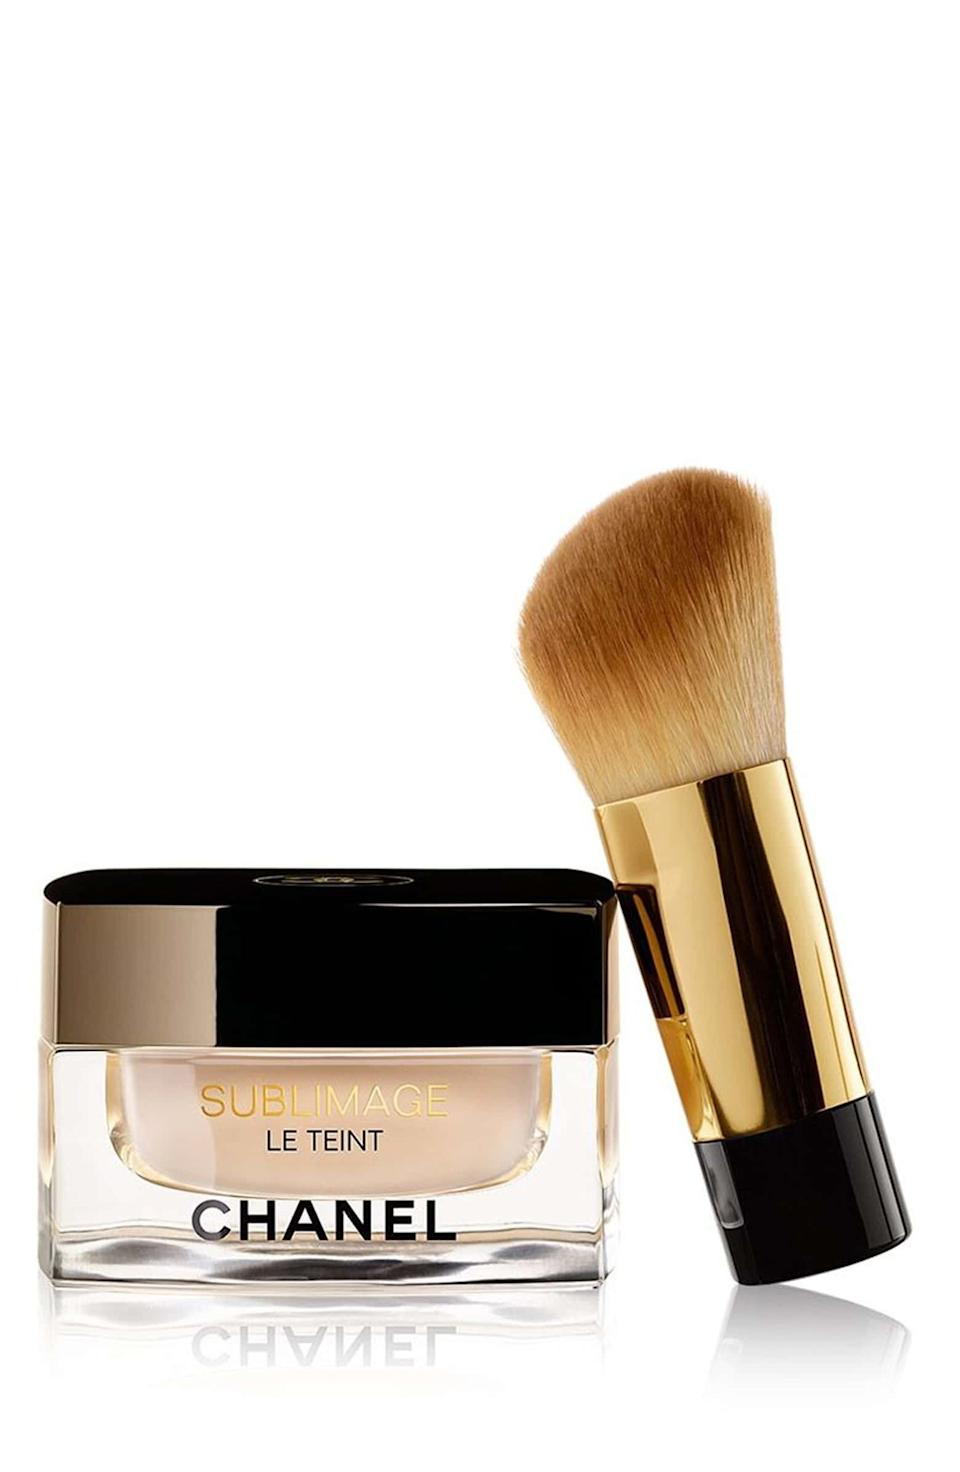 """According to <a href=""""https://people.com/royals/shop-meghan-markle-favorite-beauty-products-skincare-haircare-makeup/#chanel-sublimage-le-teint-foundation"""" target=""""_blank"""" rel=""""noopener noreferrer"""">People</a>, Markle loves the Chanel Sublimage Le Teint foundation, which is definitely a splurge.<br /><br /><strong><a href=""""https://shop.nordstrom.com/s/chanel-sublimage-le-teint-foundation/4583860"""" target=""""_blank"""" rel=""""noopener noreferrer"""">Chanel Sublimage Le Teint foundation</a>, $135</strong>"""